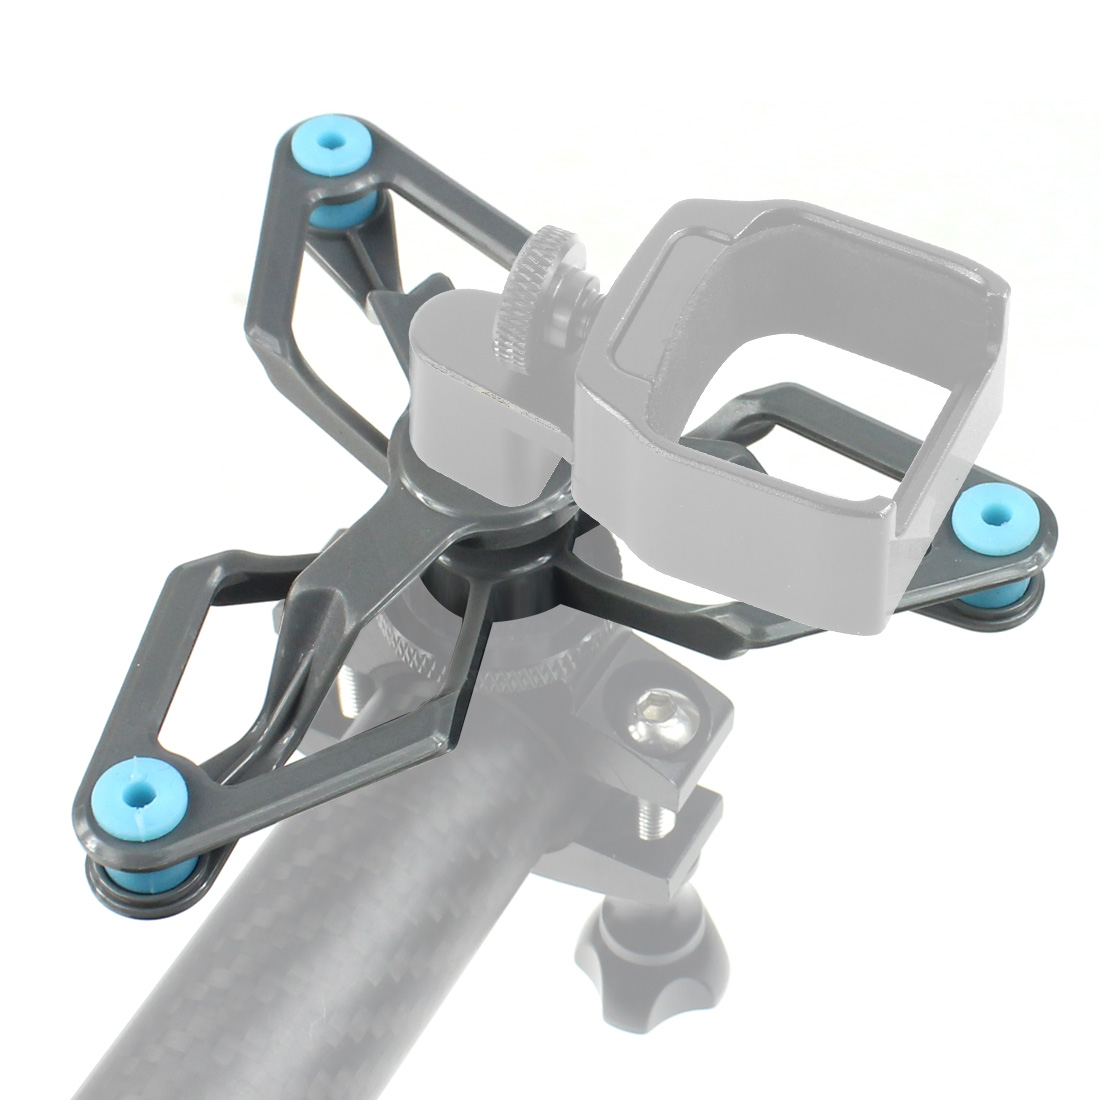 Damping Shock Absorber Mount Stand Bracket Tripod Kit 1/4